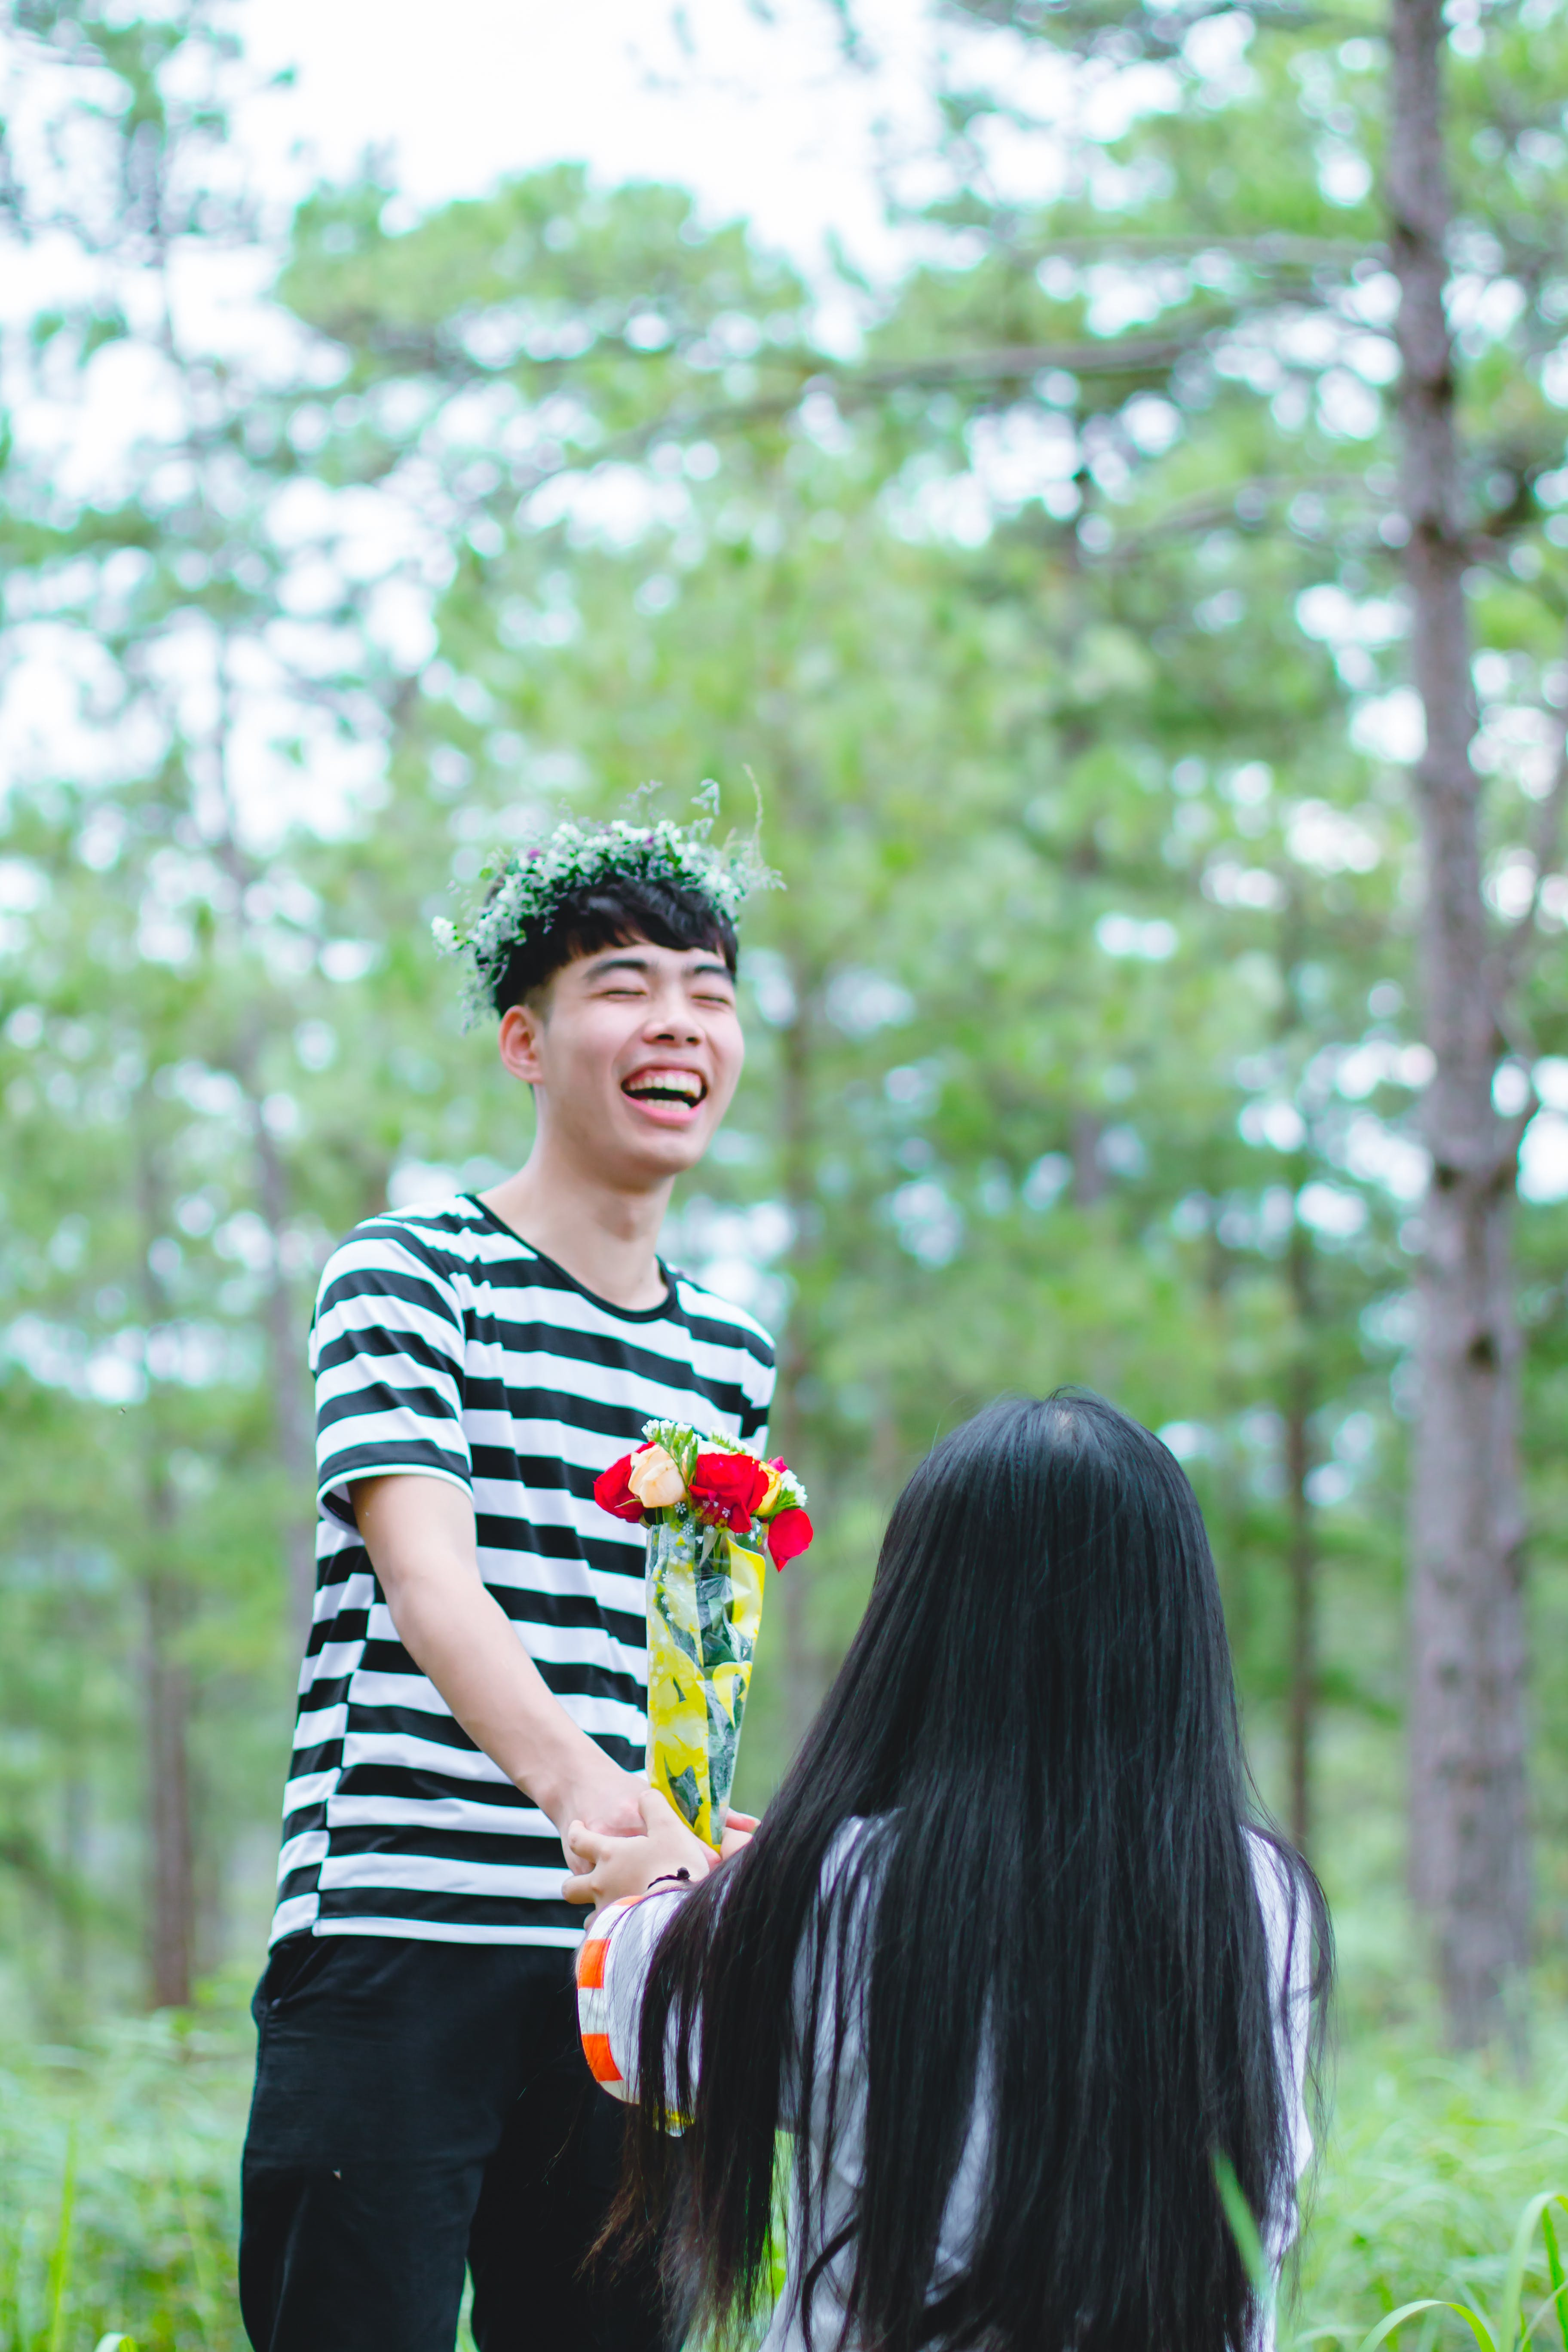 Man Wearing White and Black Striped Crew-neck Shirt Holding Red and Yellow Flowers